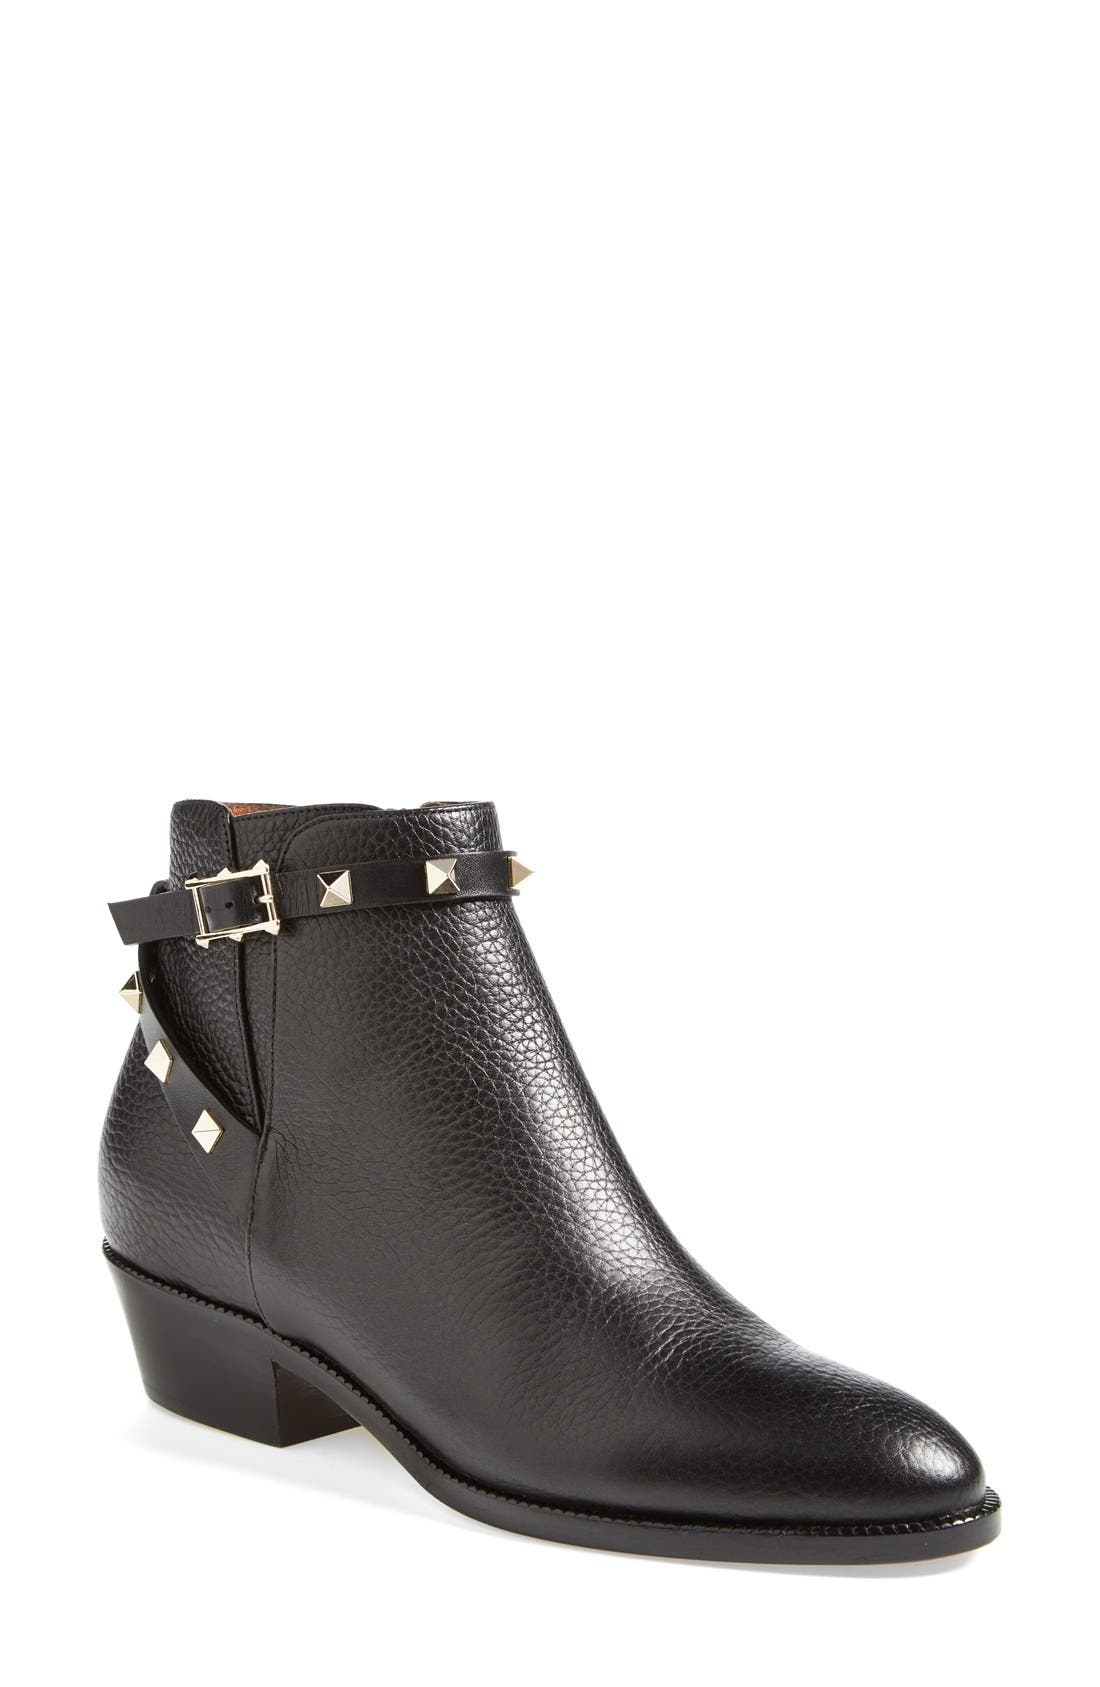 Alternate Image 1 Selected - Valentino 'Rockstud' Ankle Boot (Women)